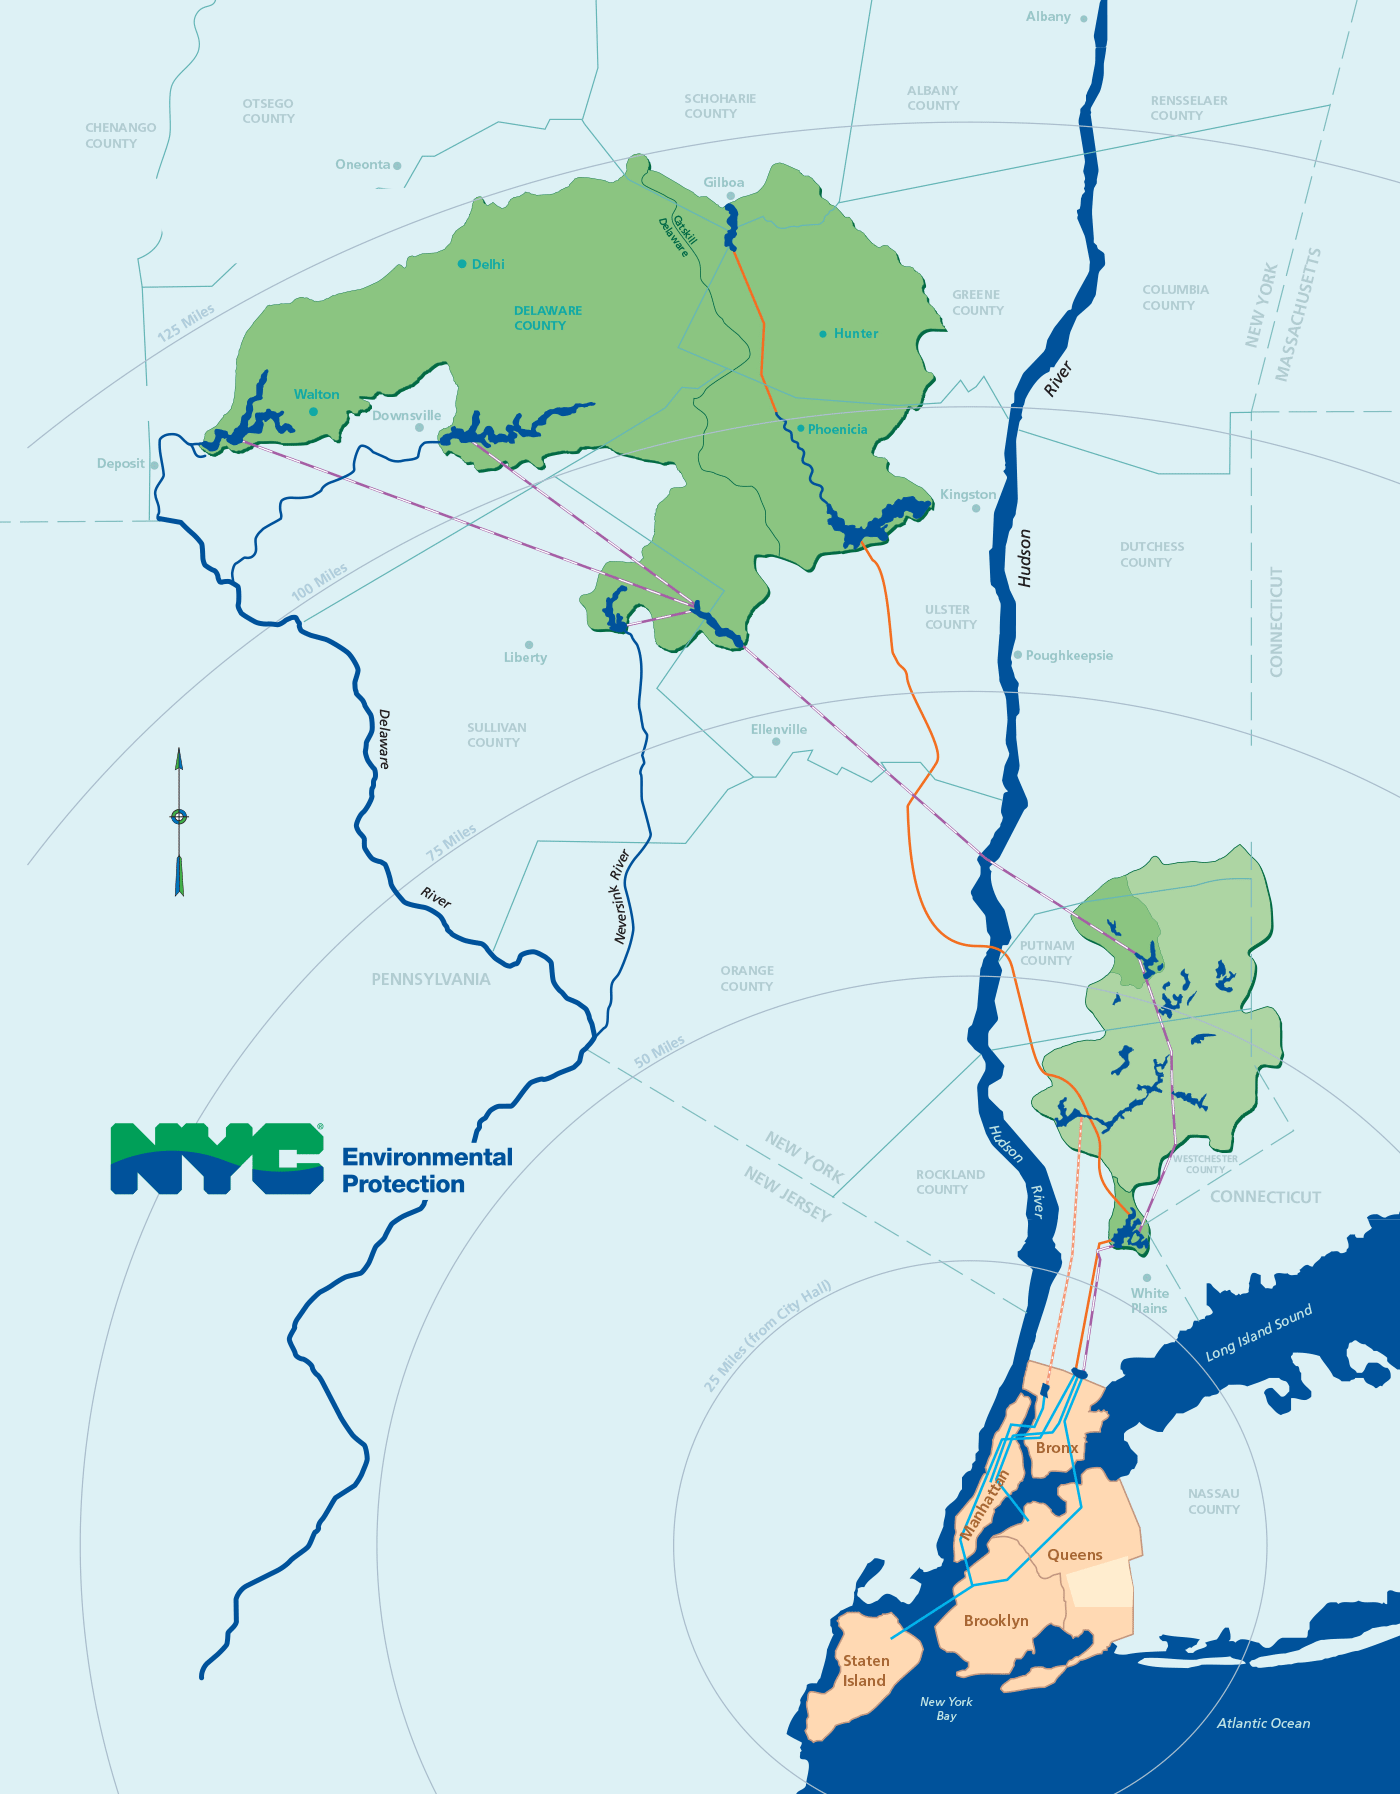 New York City's Water Supply System